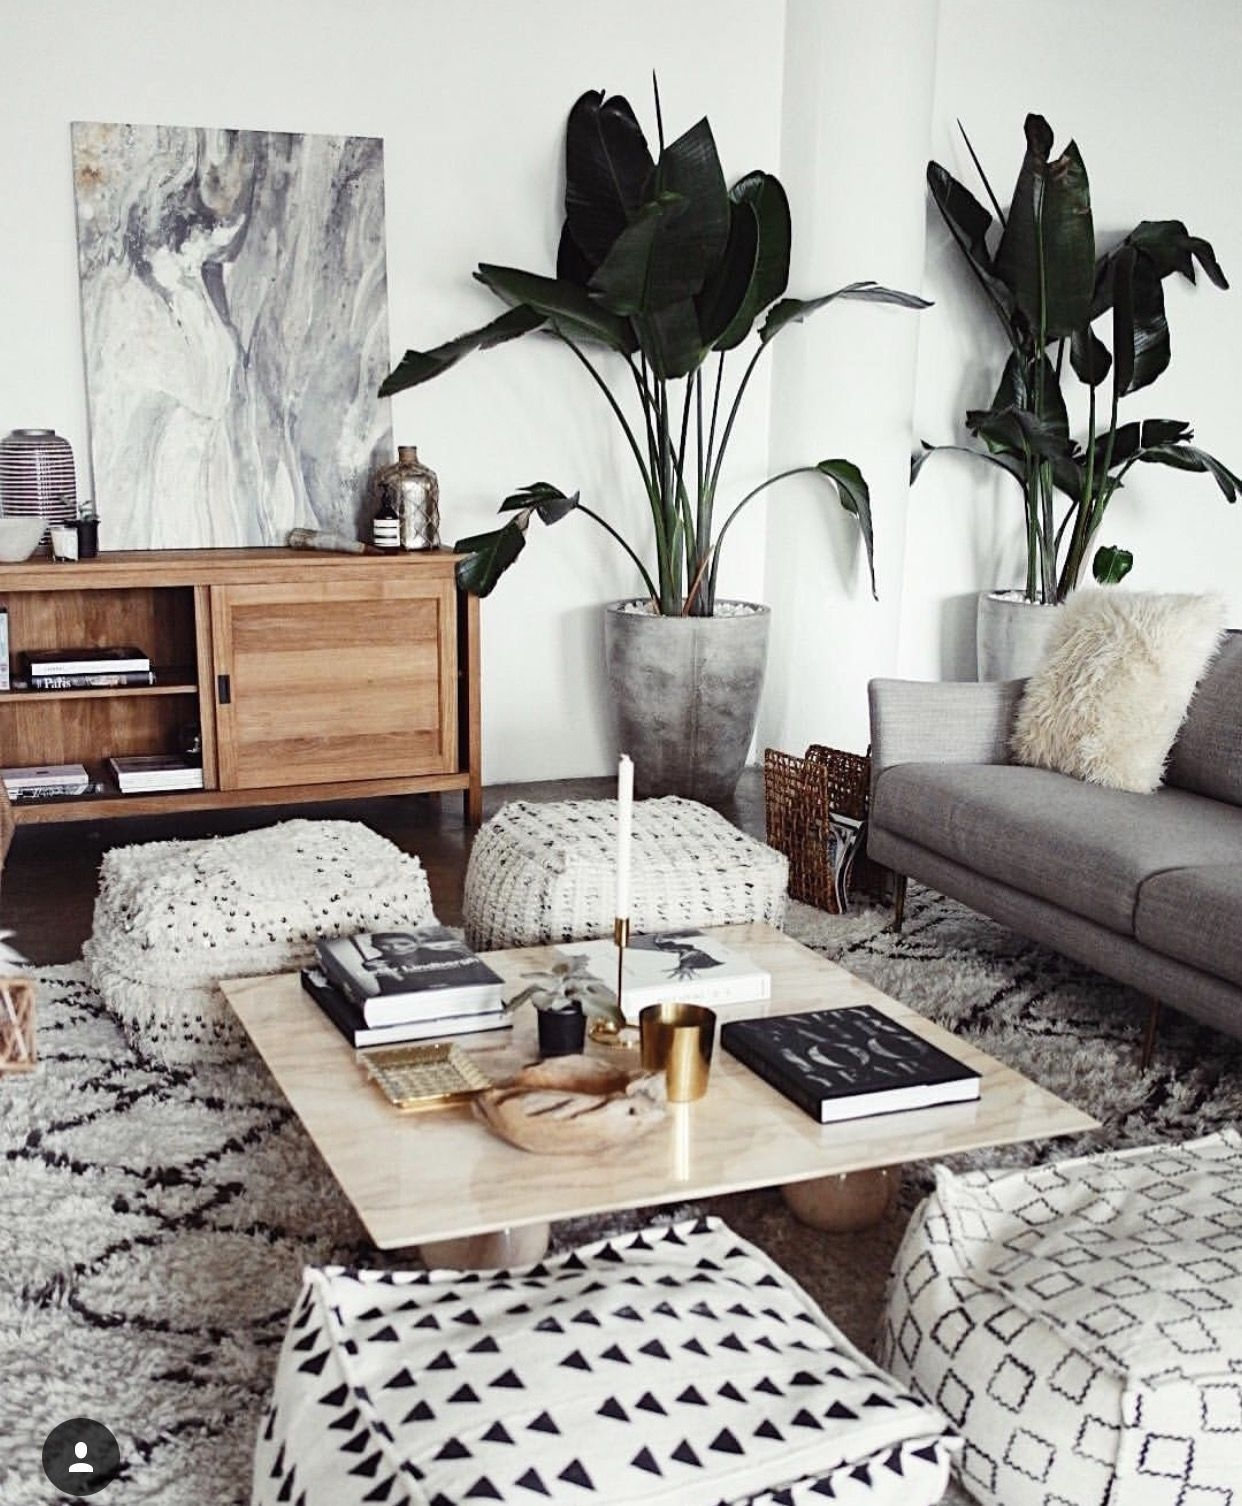 Https Www Vrogue Co Boho Home Decor Bohemian Living Room Ideas Decorating Images Breathtaking Black And White Small Living Room Interior Design Ideas Home On Boho Home Decor Bohemian Living Room Ideas Decorating Images